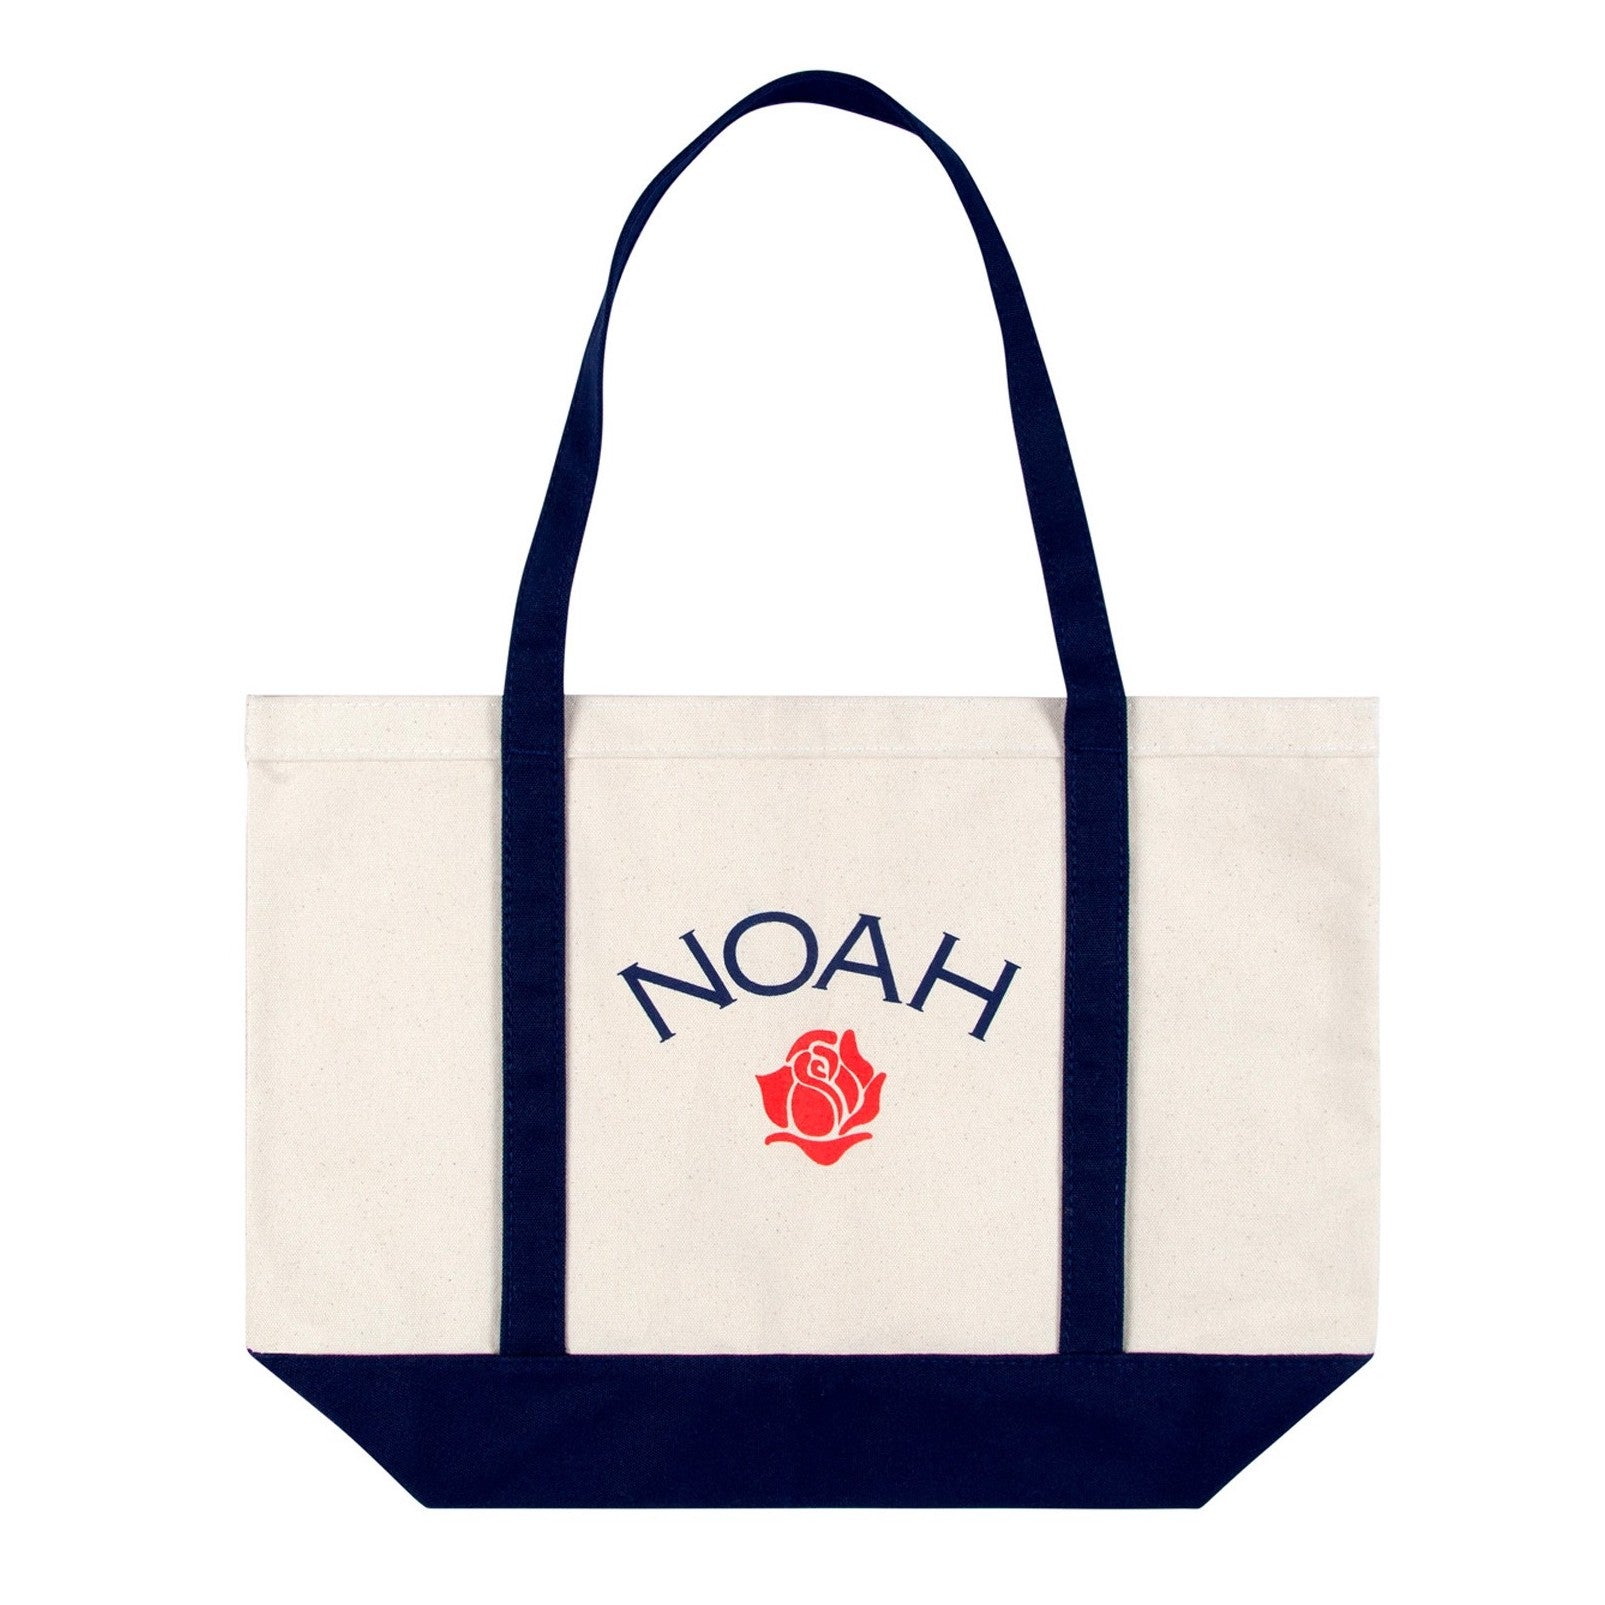 NOAH - Rose Logo Tote Bag - Natural